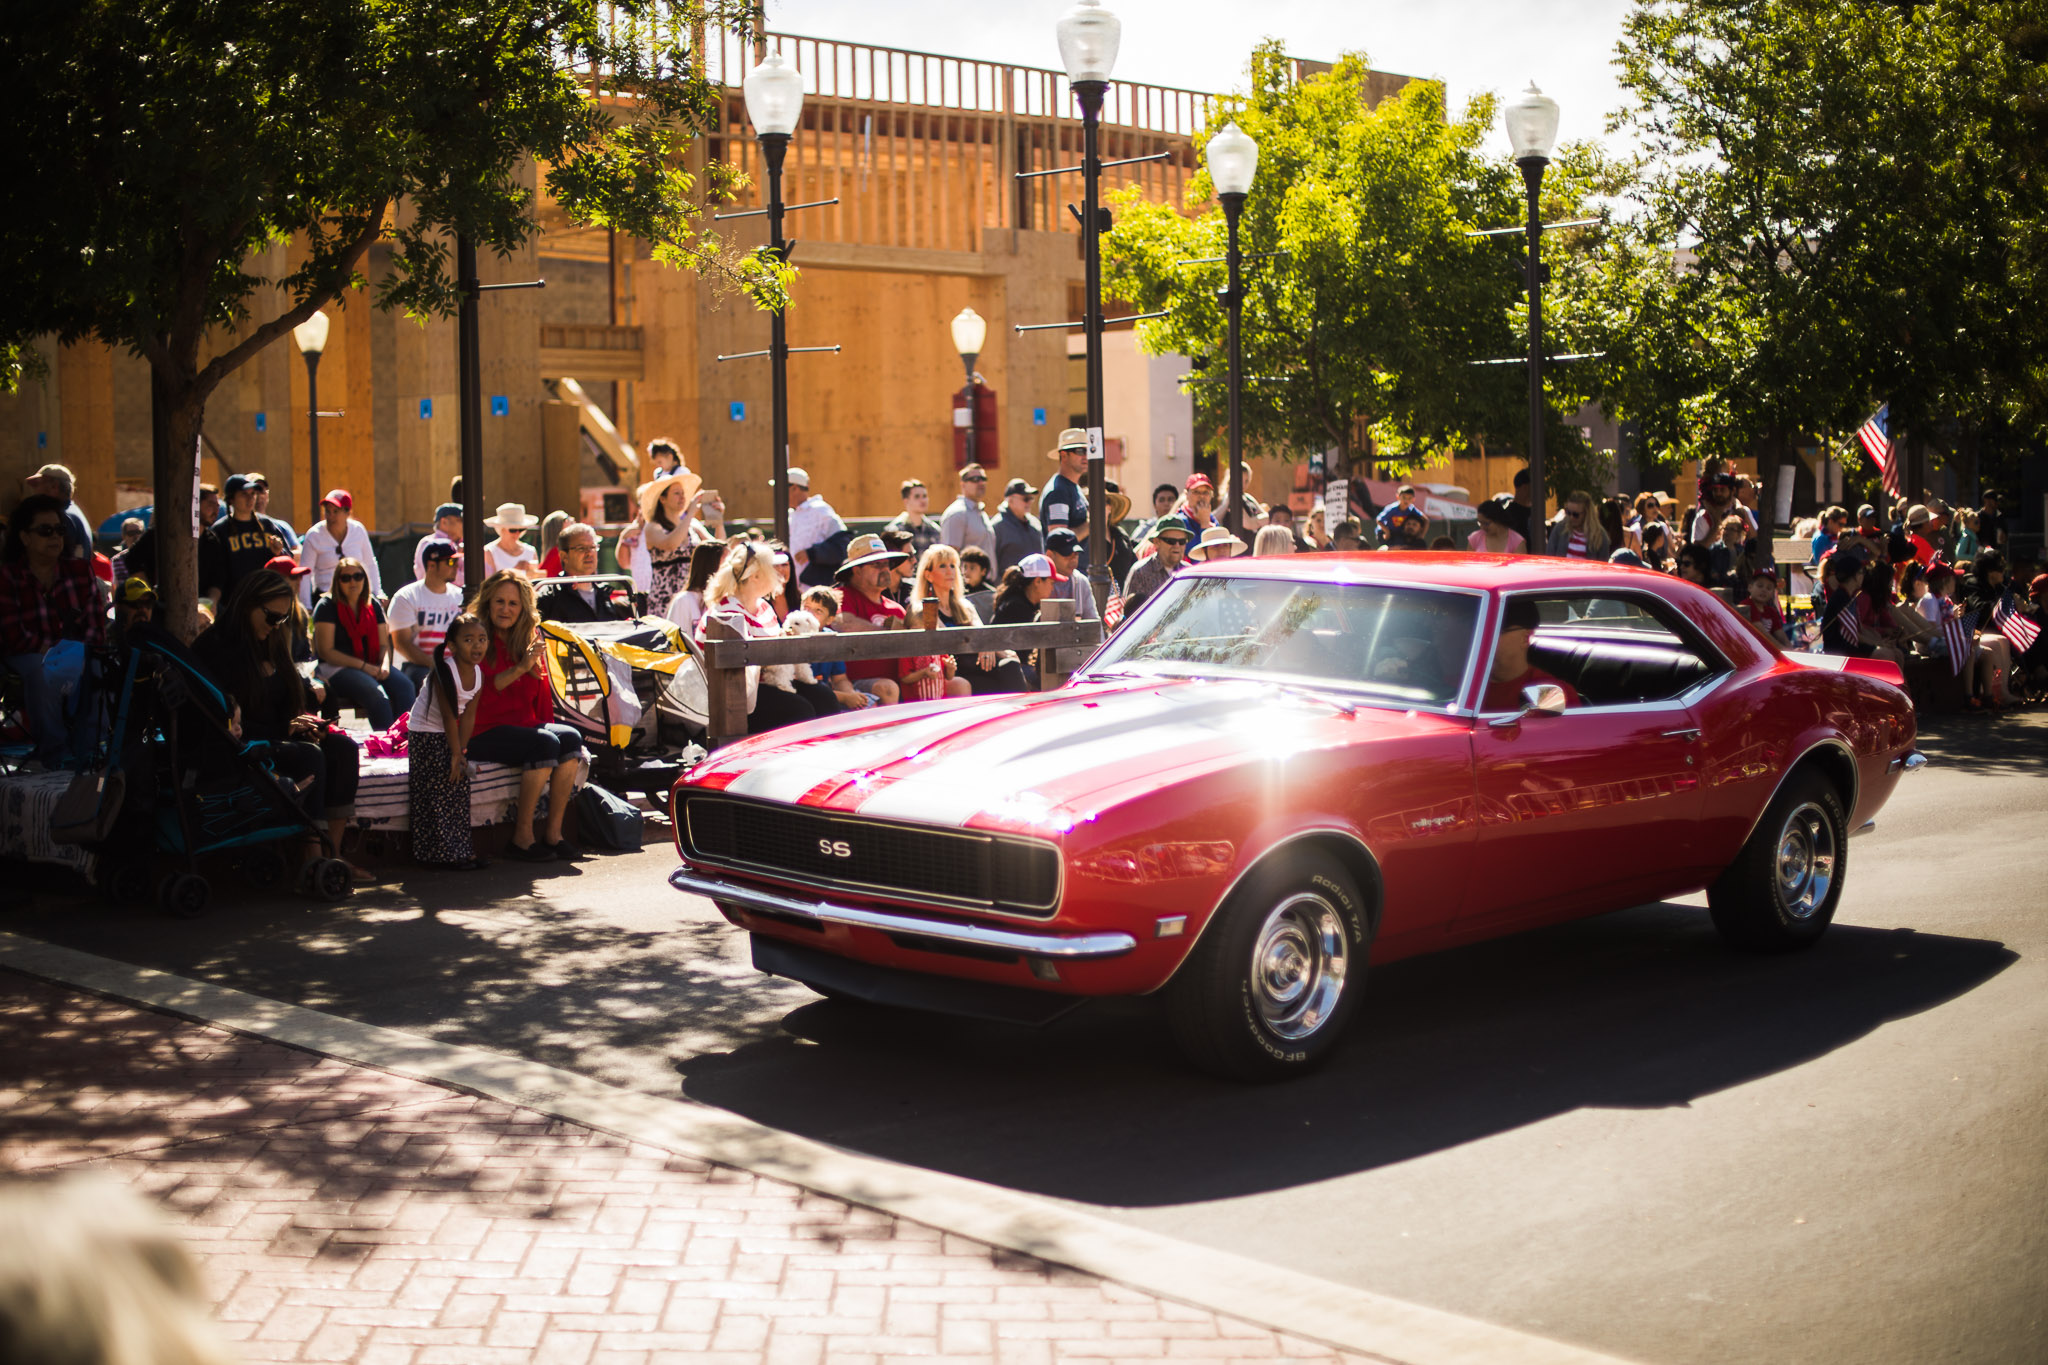 Archer_Inspired_Photography_Morgan_Hill_California_4th_of_july_parade-25.jpg